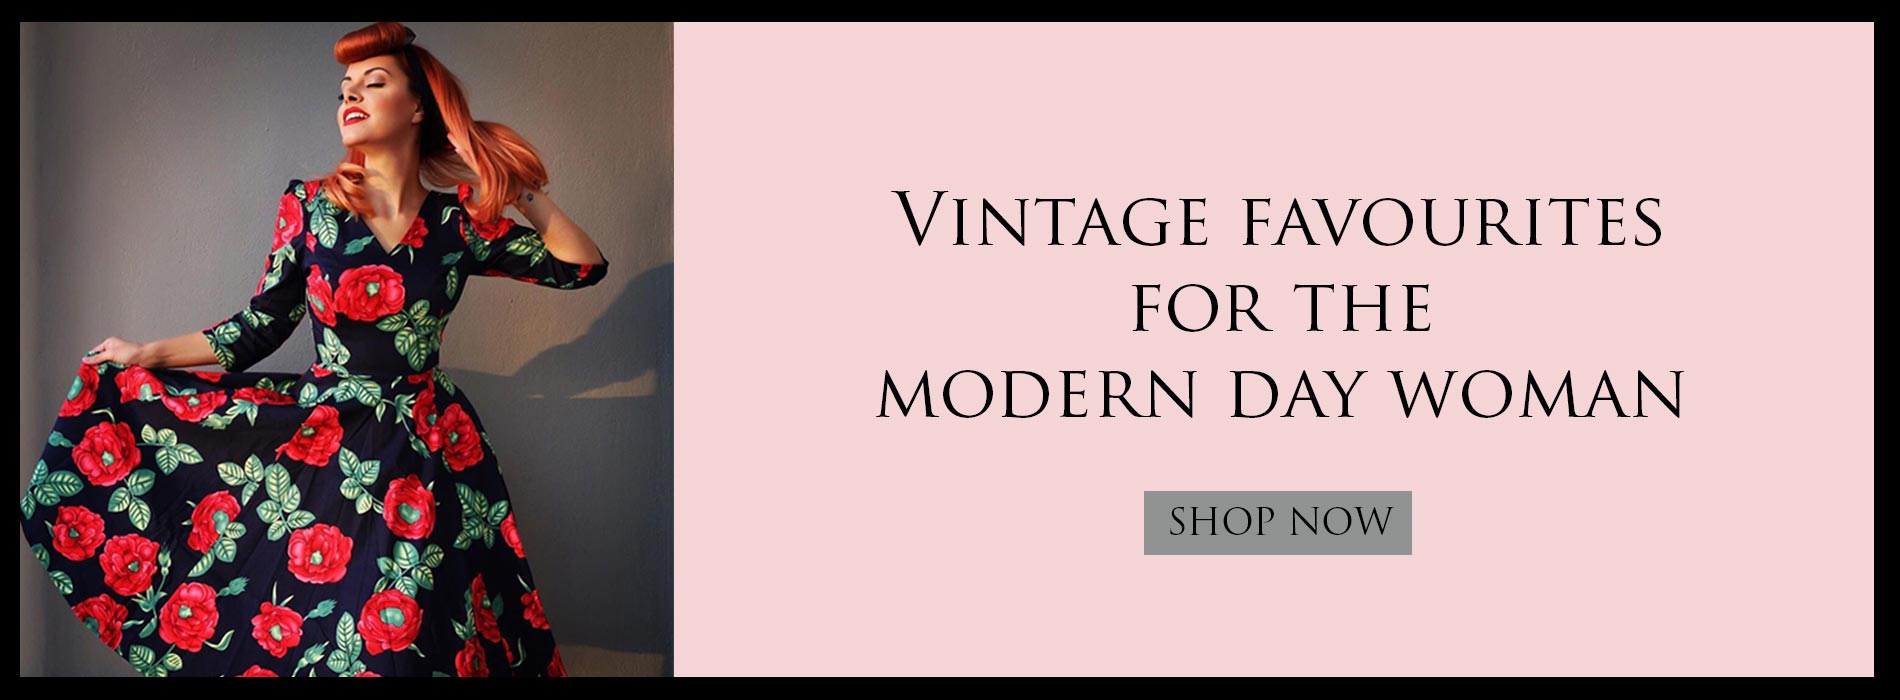 Vintage favourites for the modern day woman 2